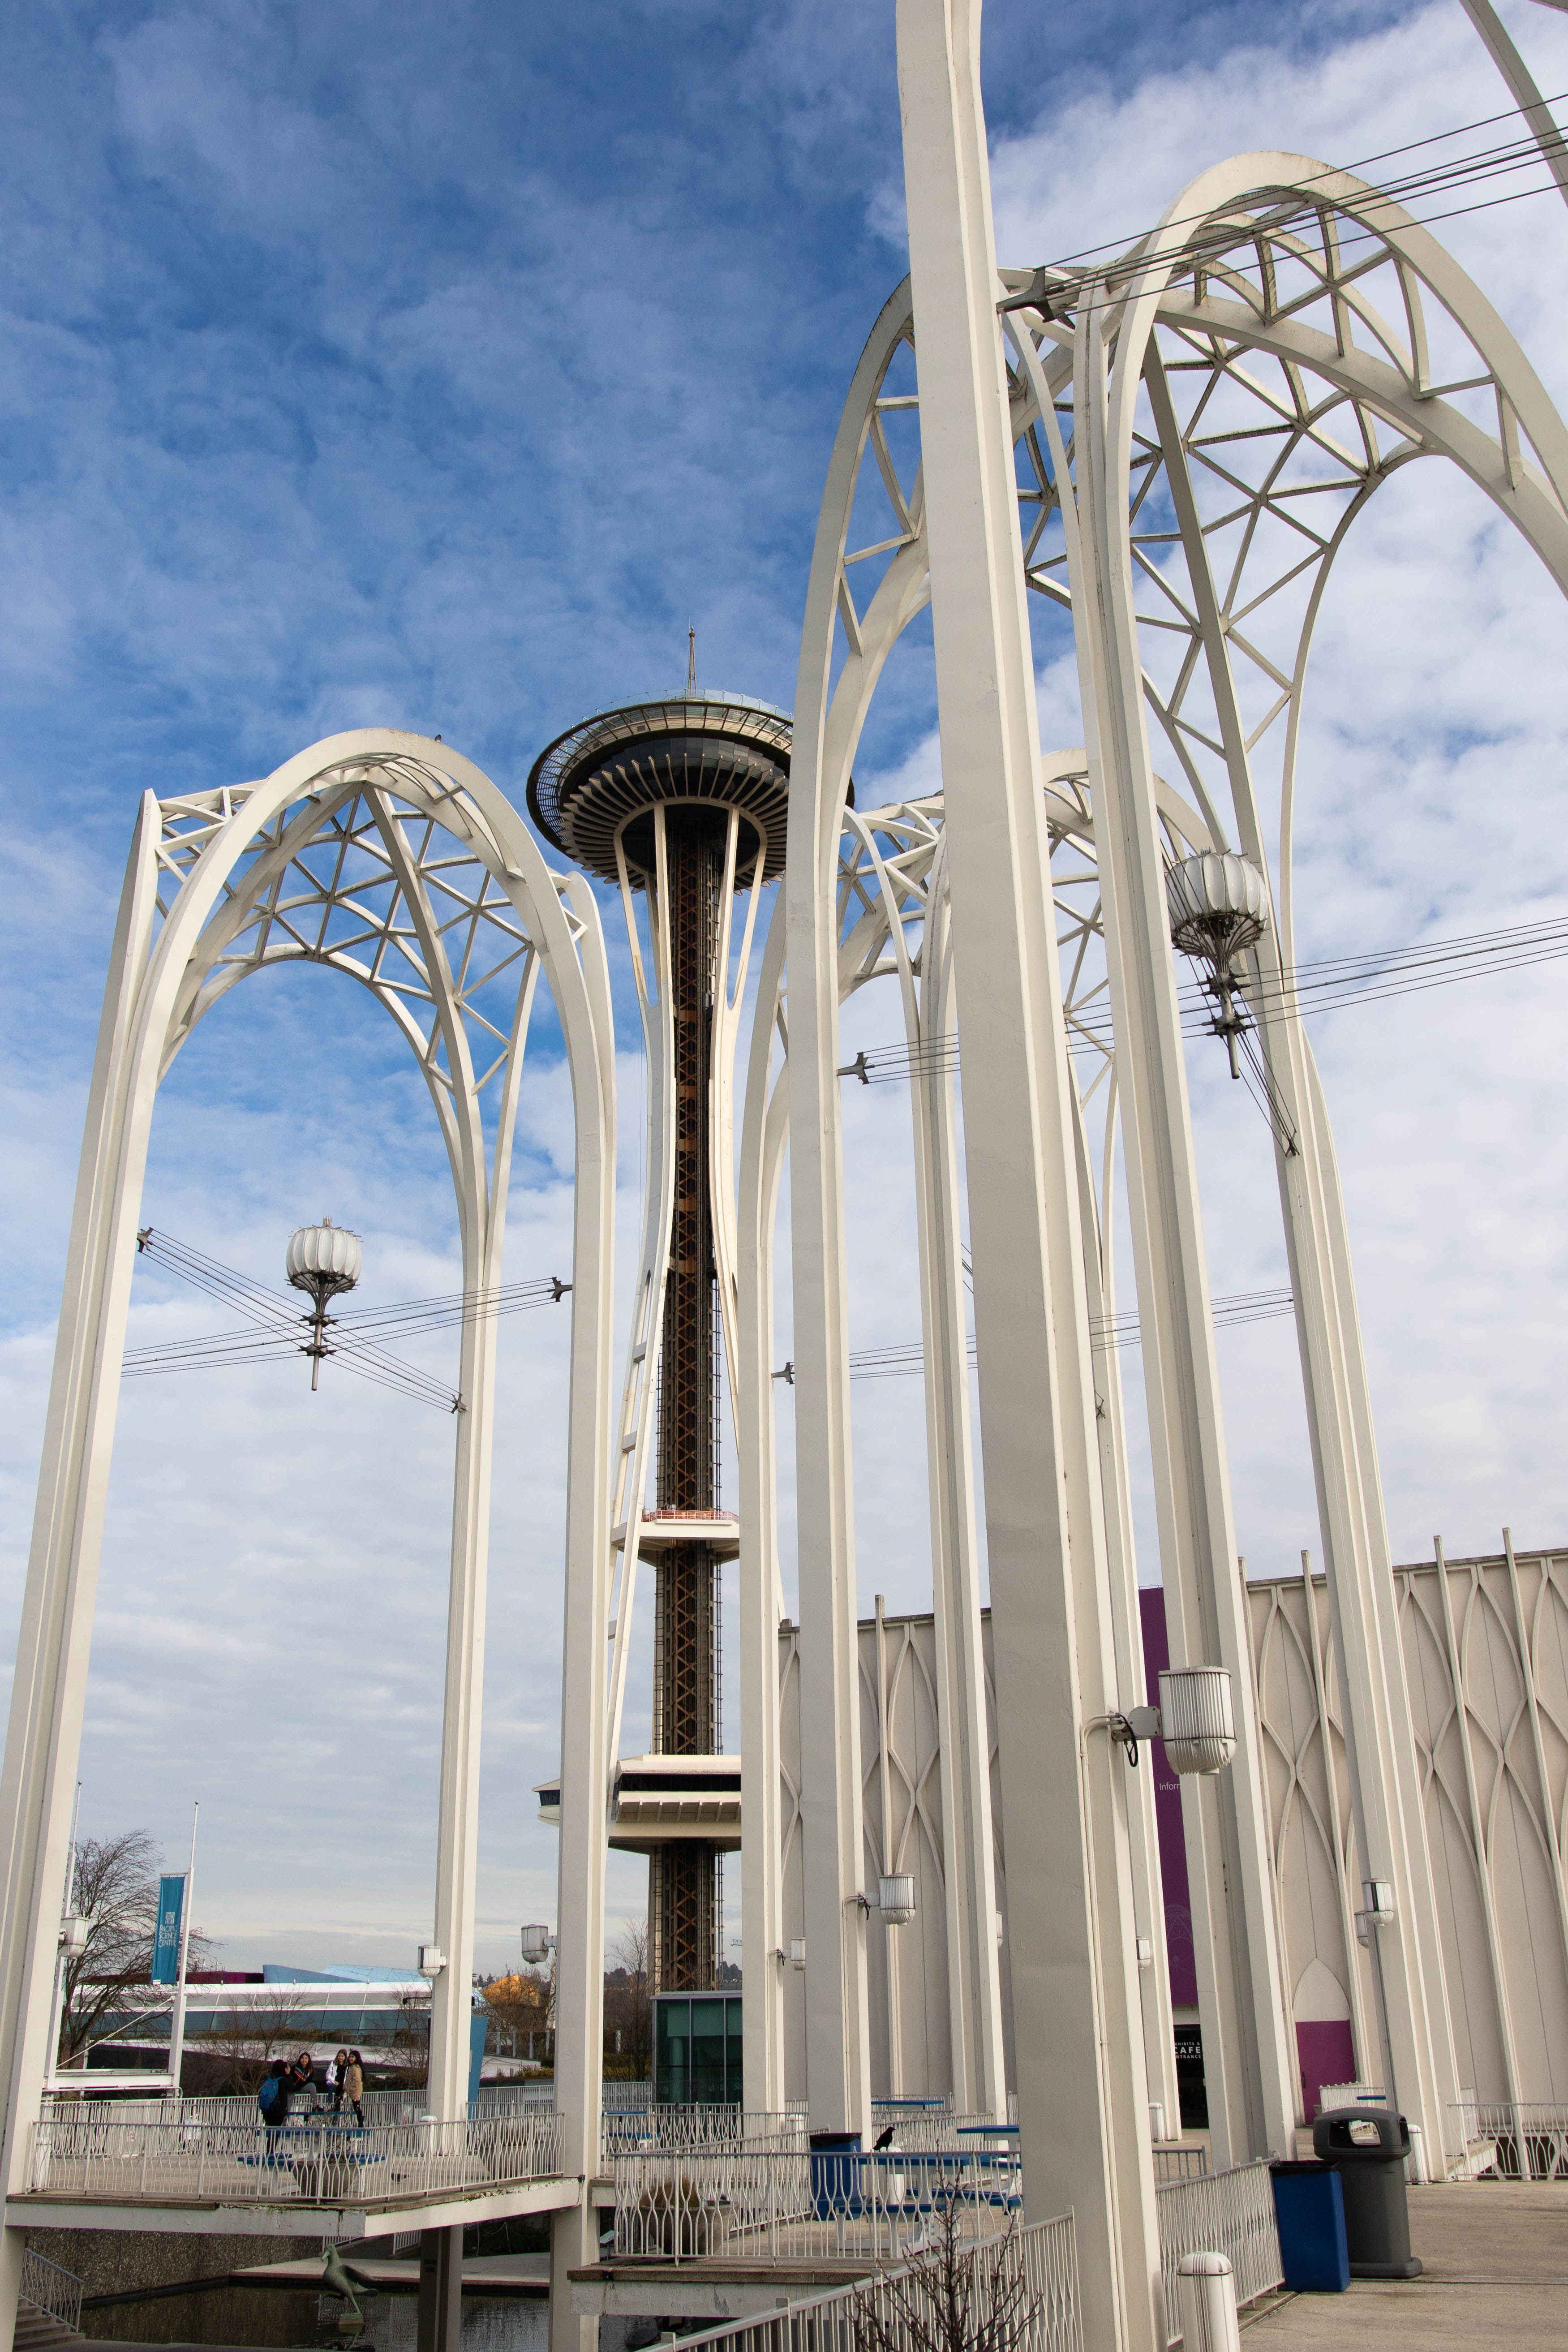 Seattle space needle in view behind tall, white, structures